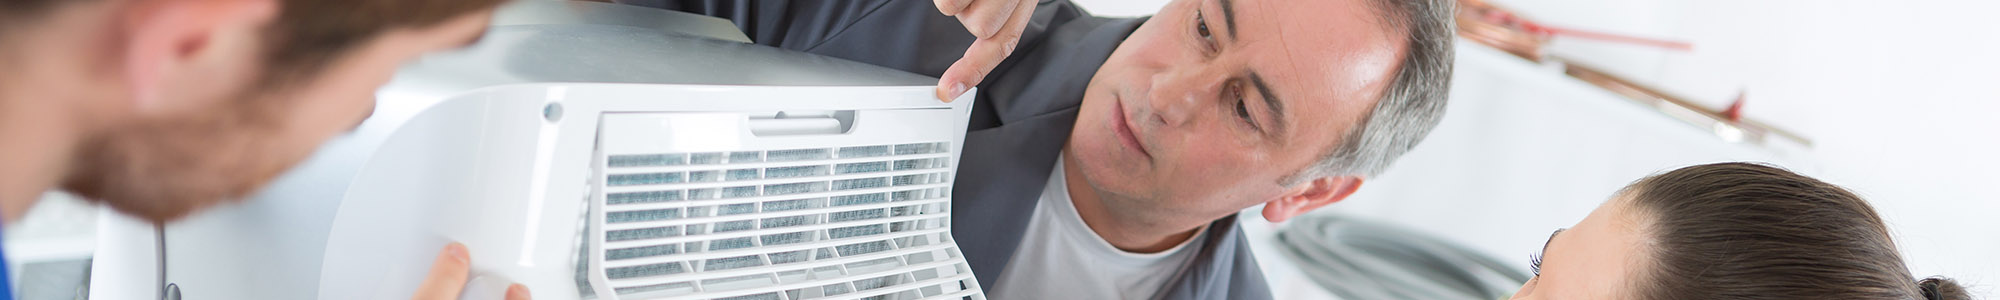 plumbing, heating, and air conditioning contractors in golden bc